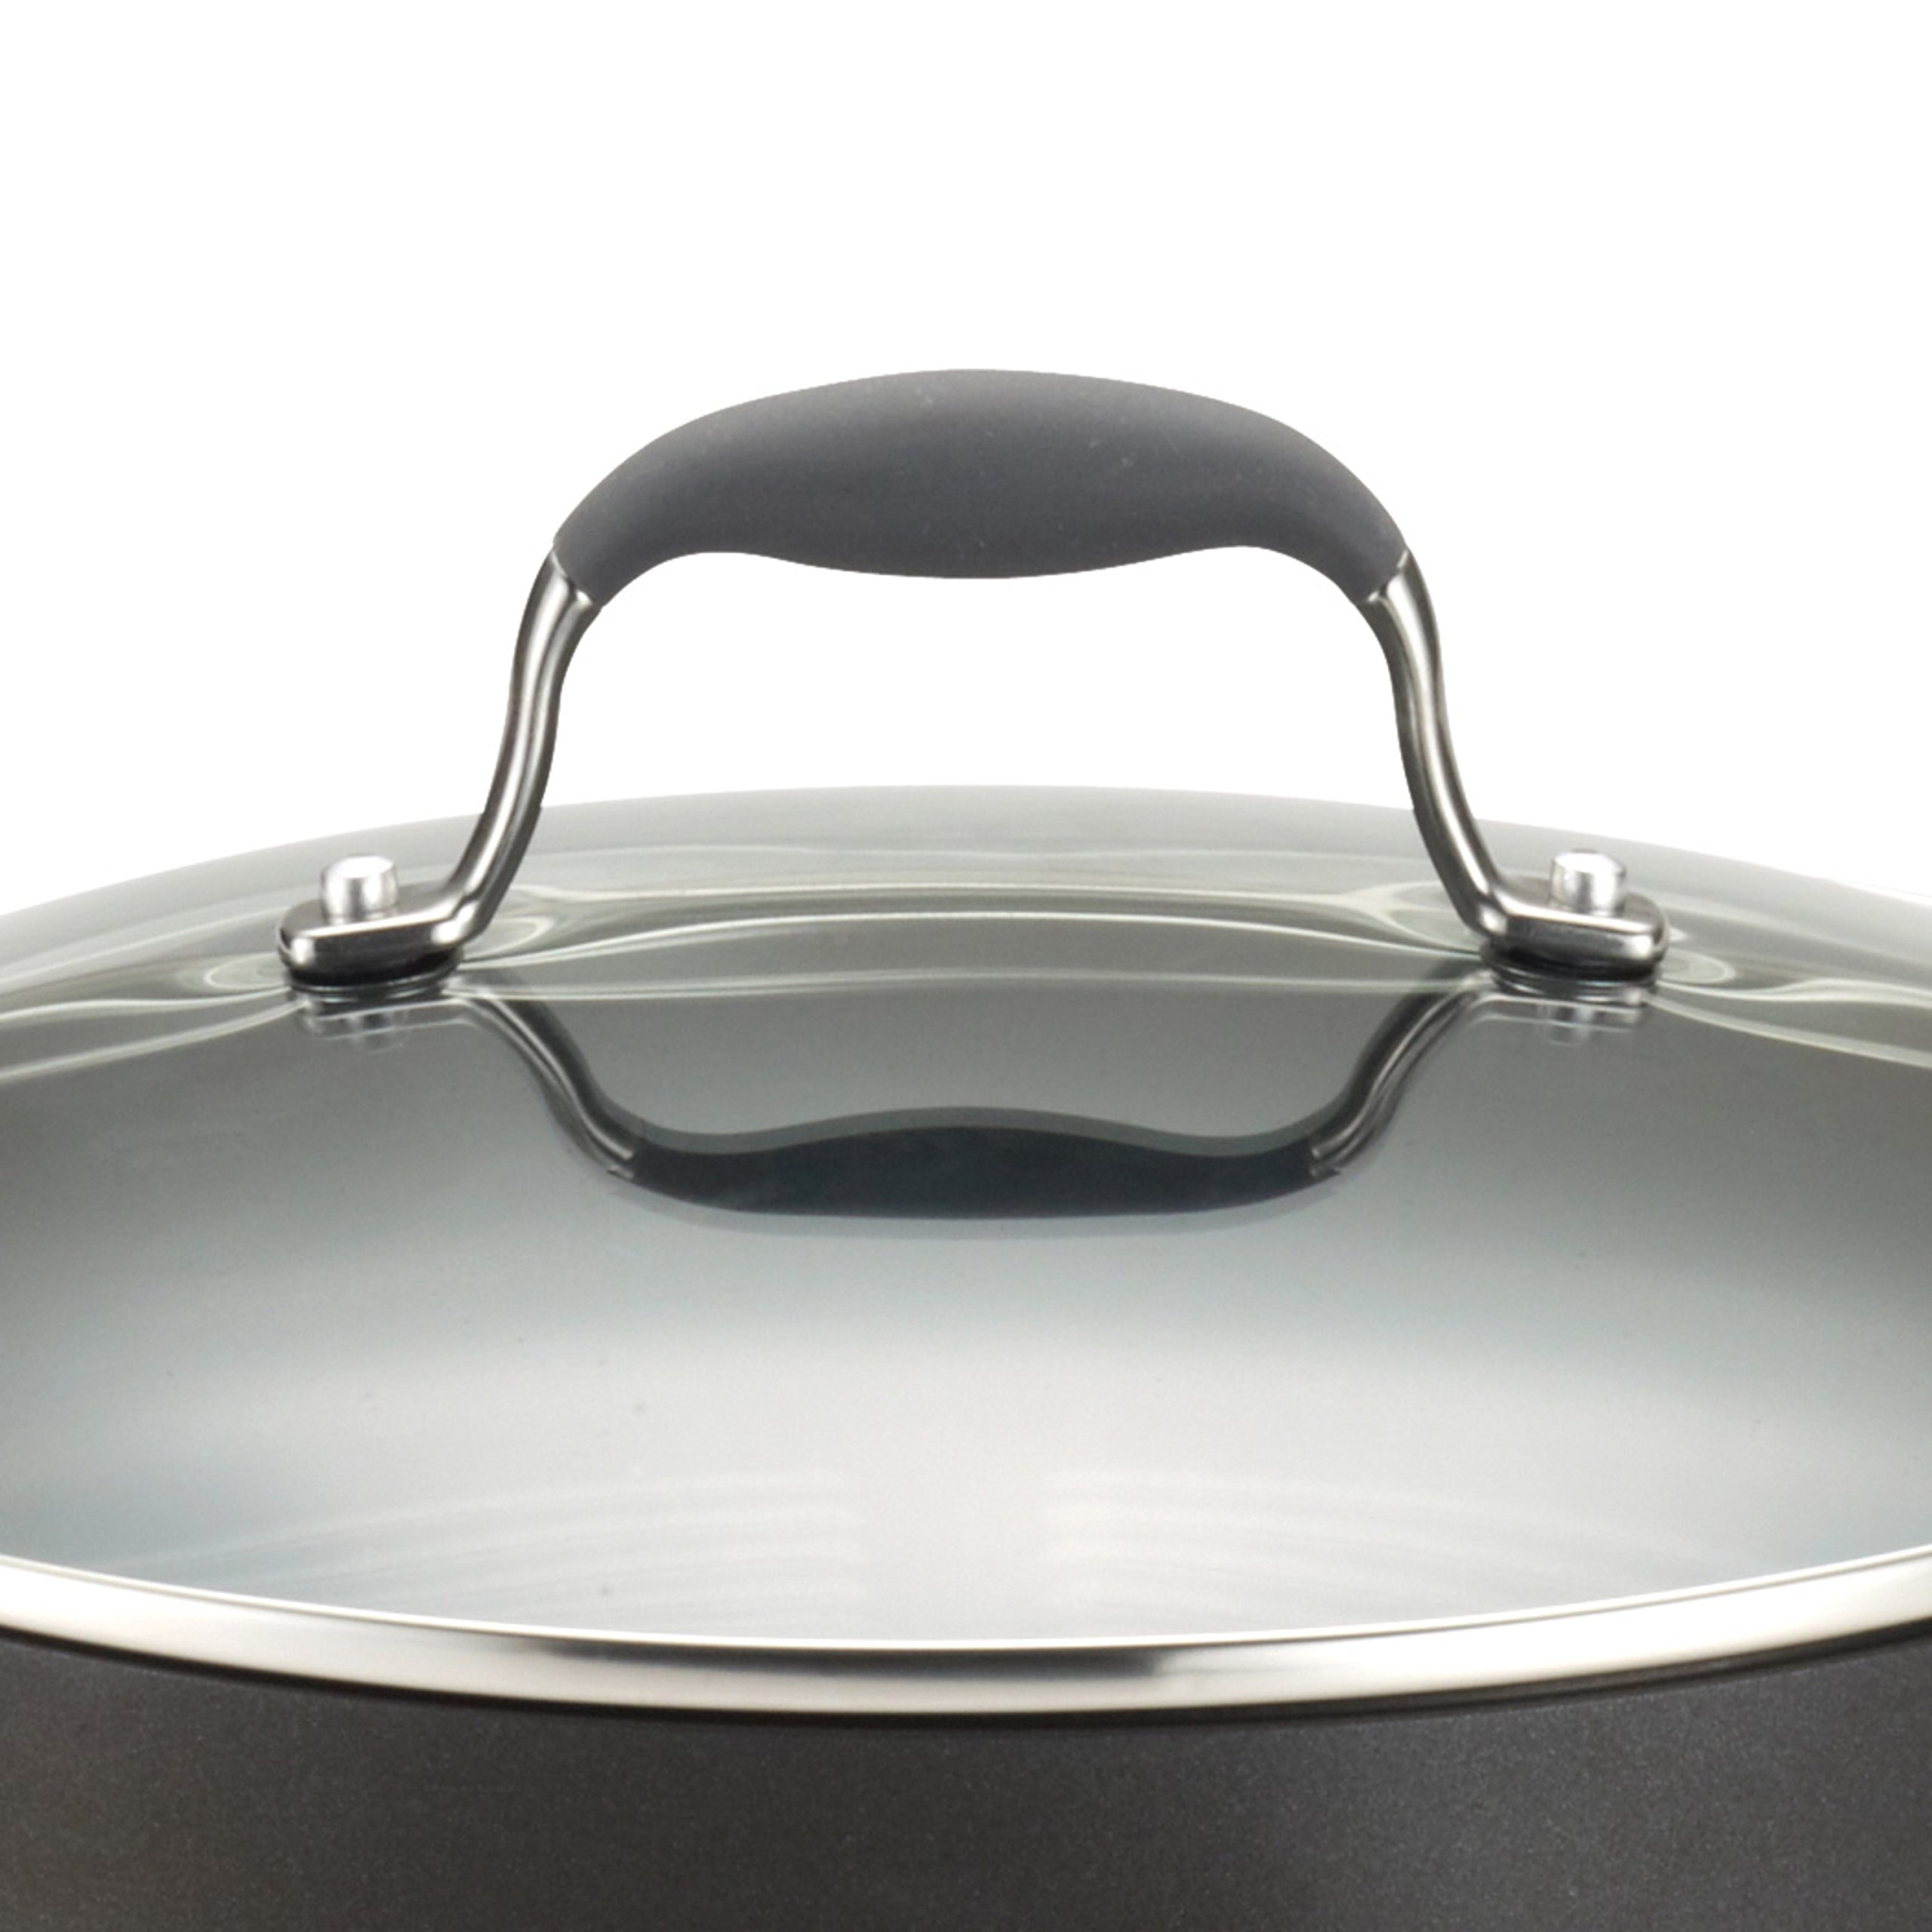 Anolon Advanced Hard-Anodized Nonstick 5-Quart Covered Sauté with Helper Handle, Gray by Anolon